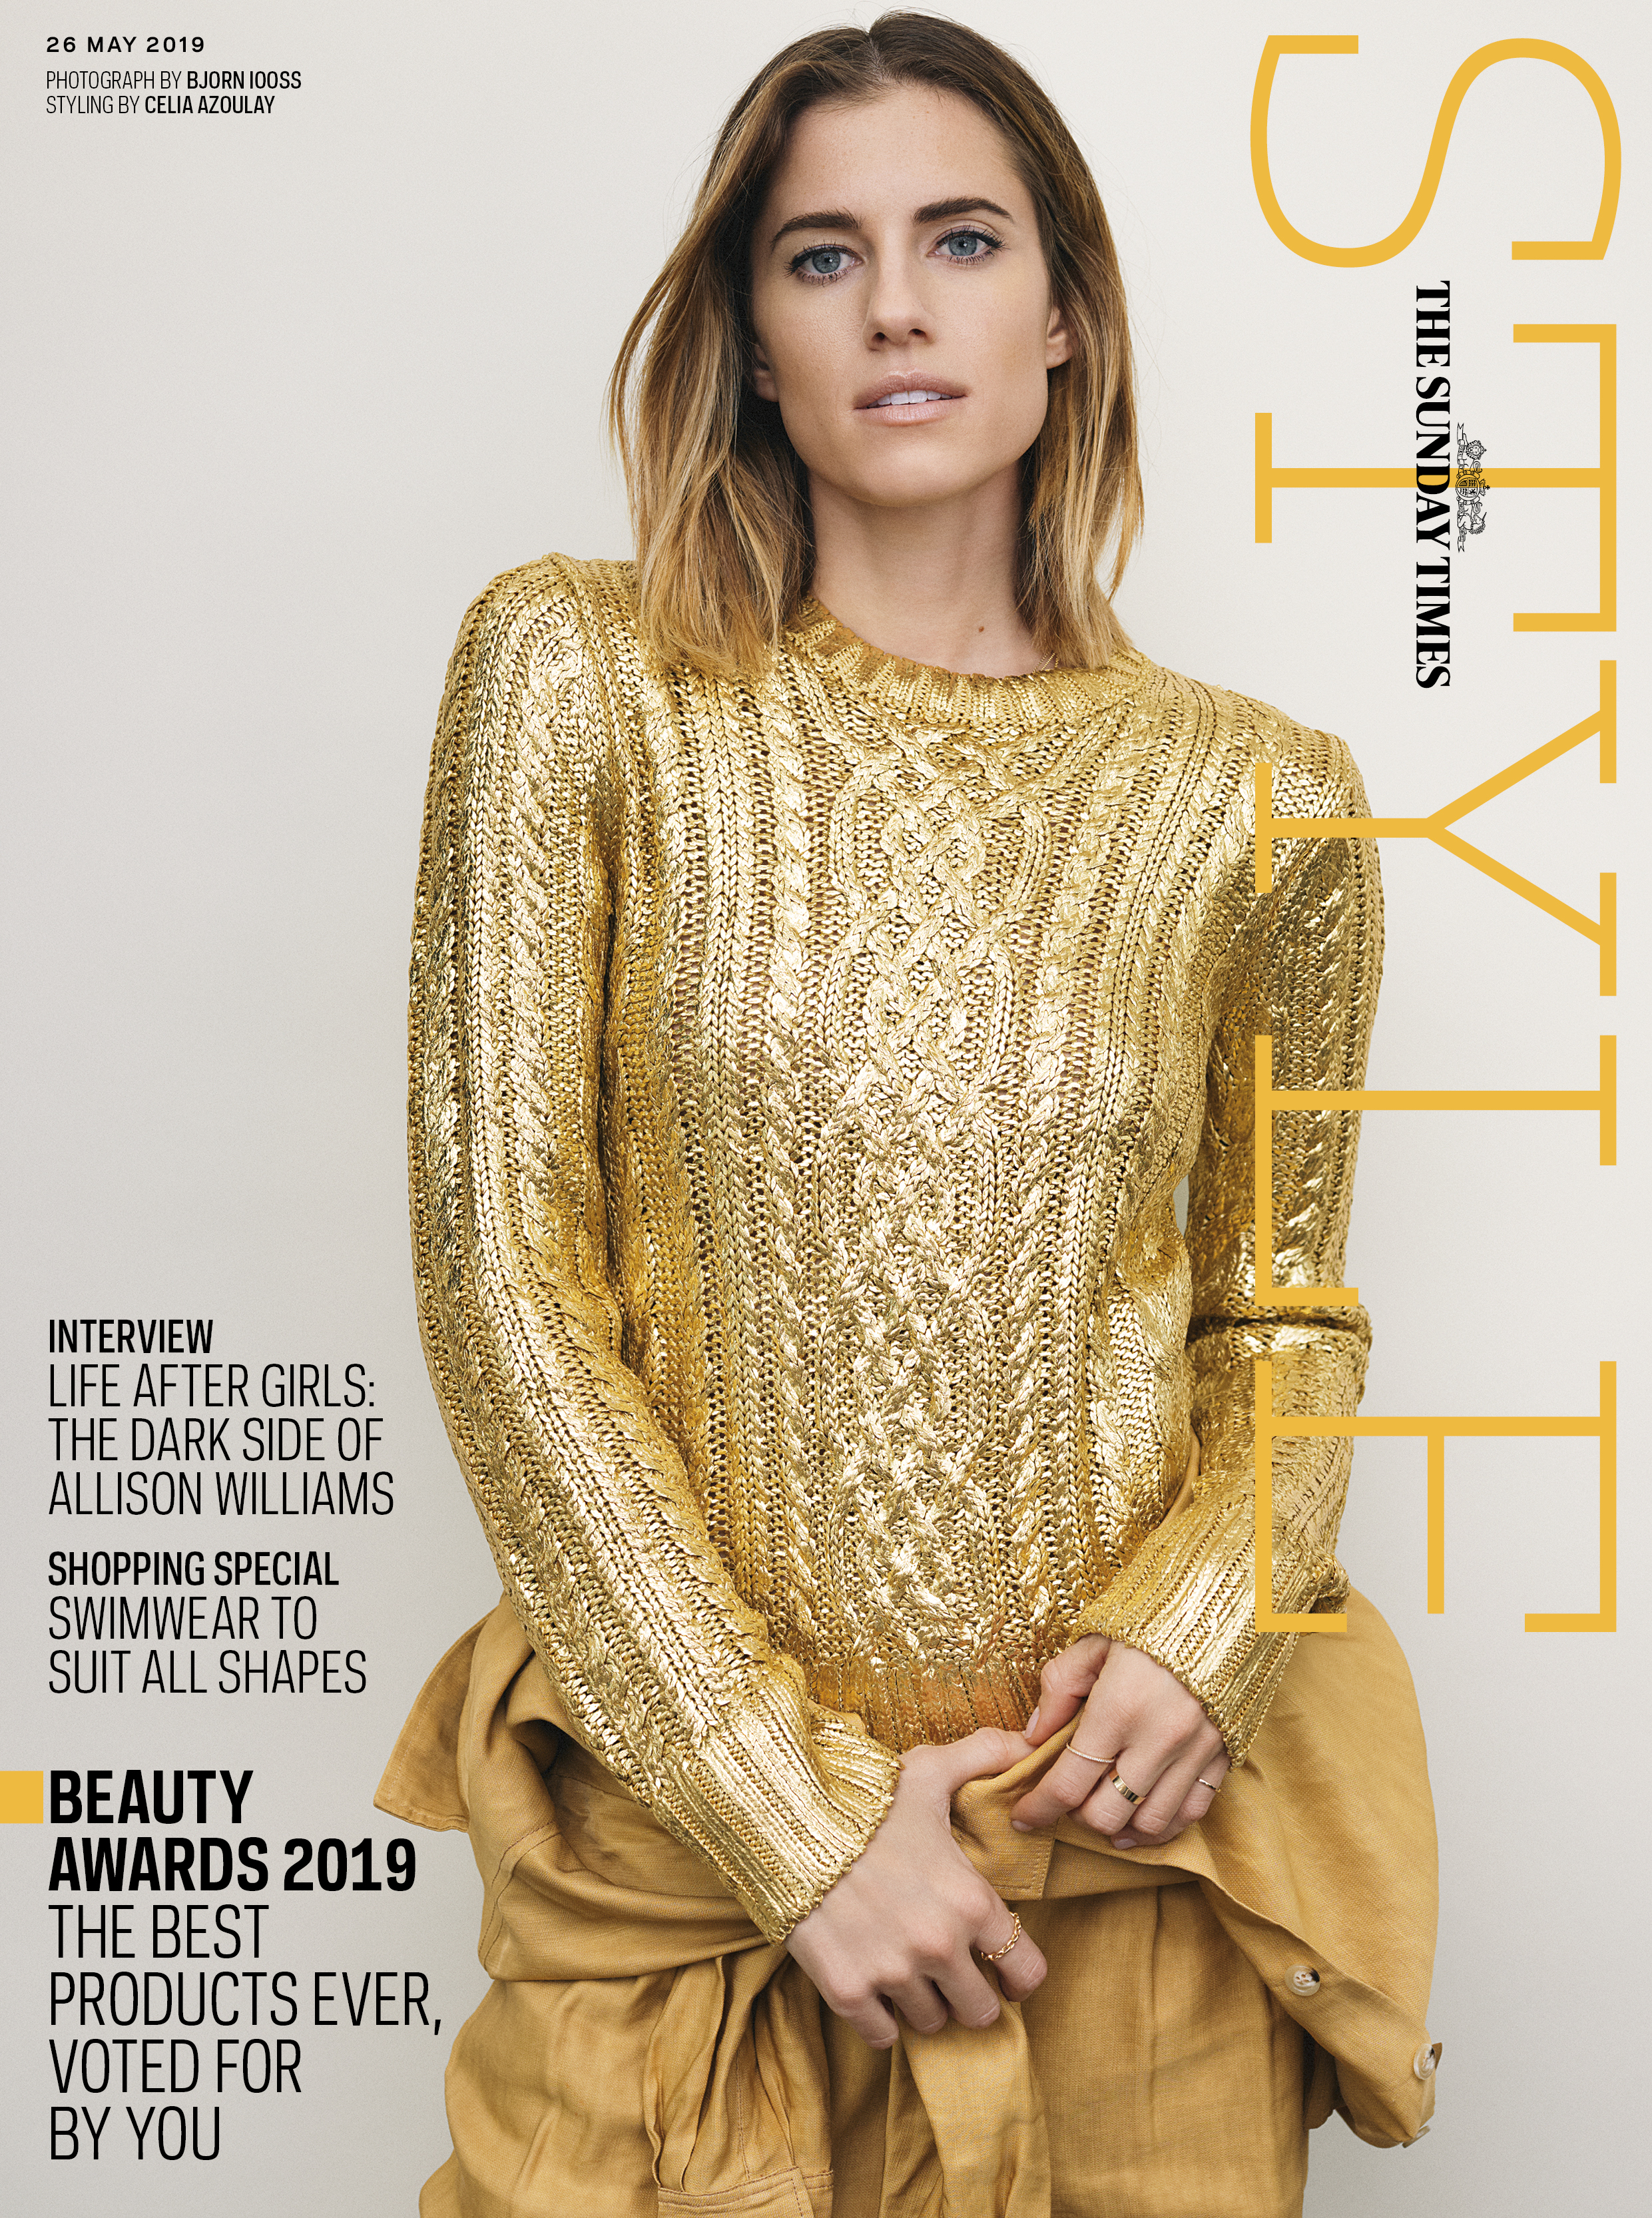 The Sunday Times STYLE 26th May 2019